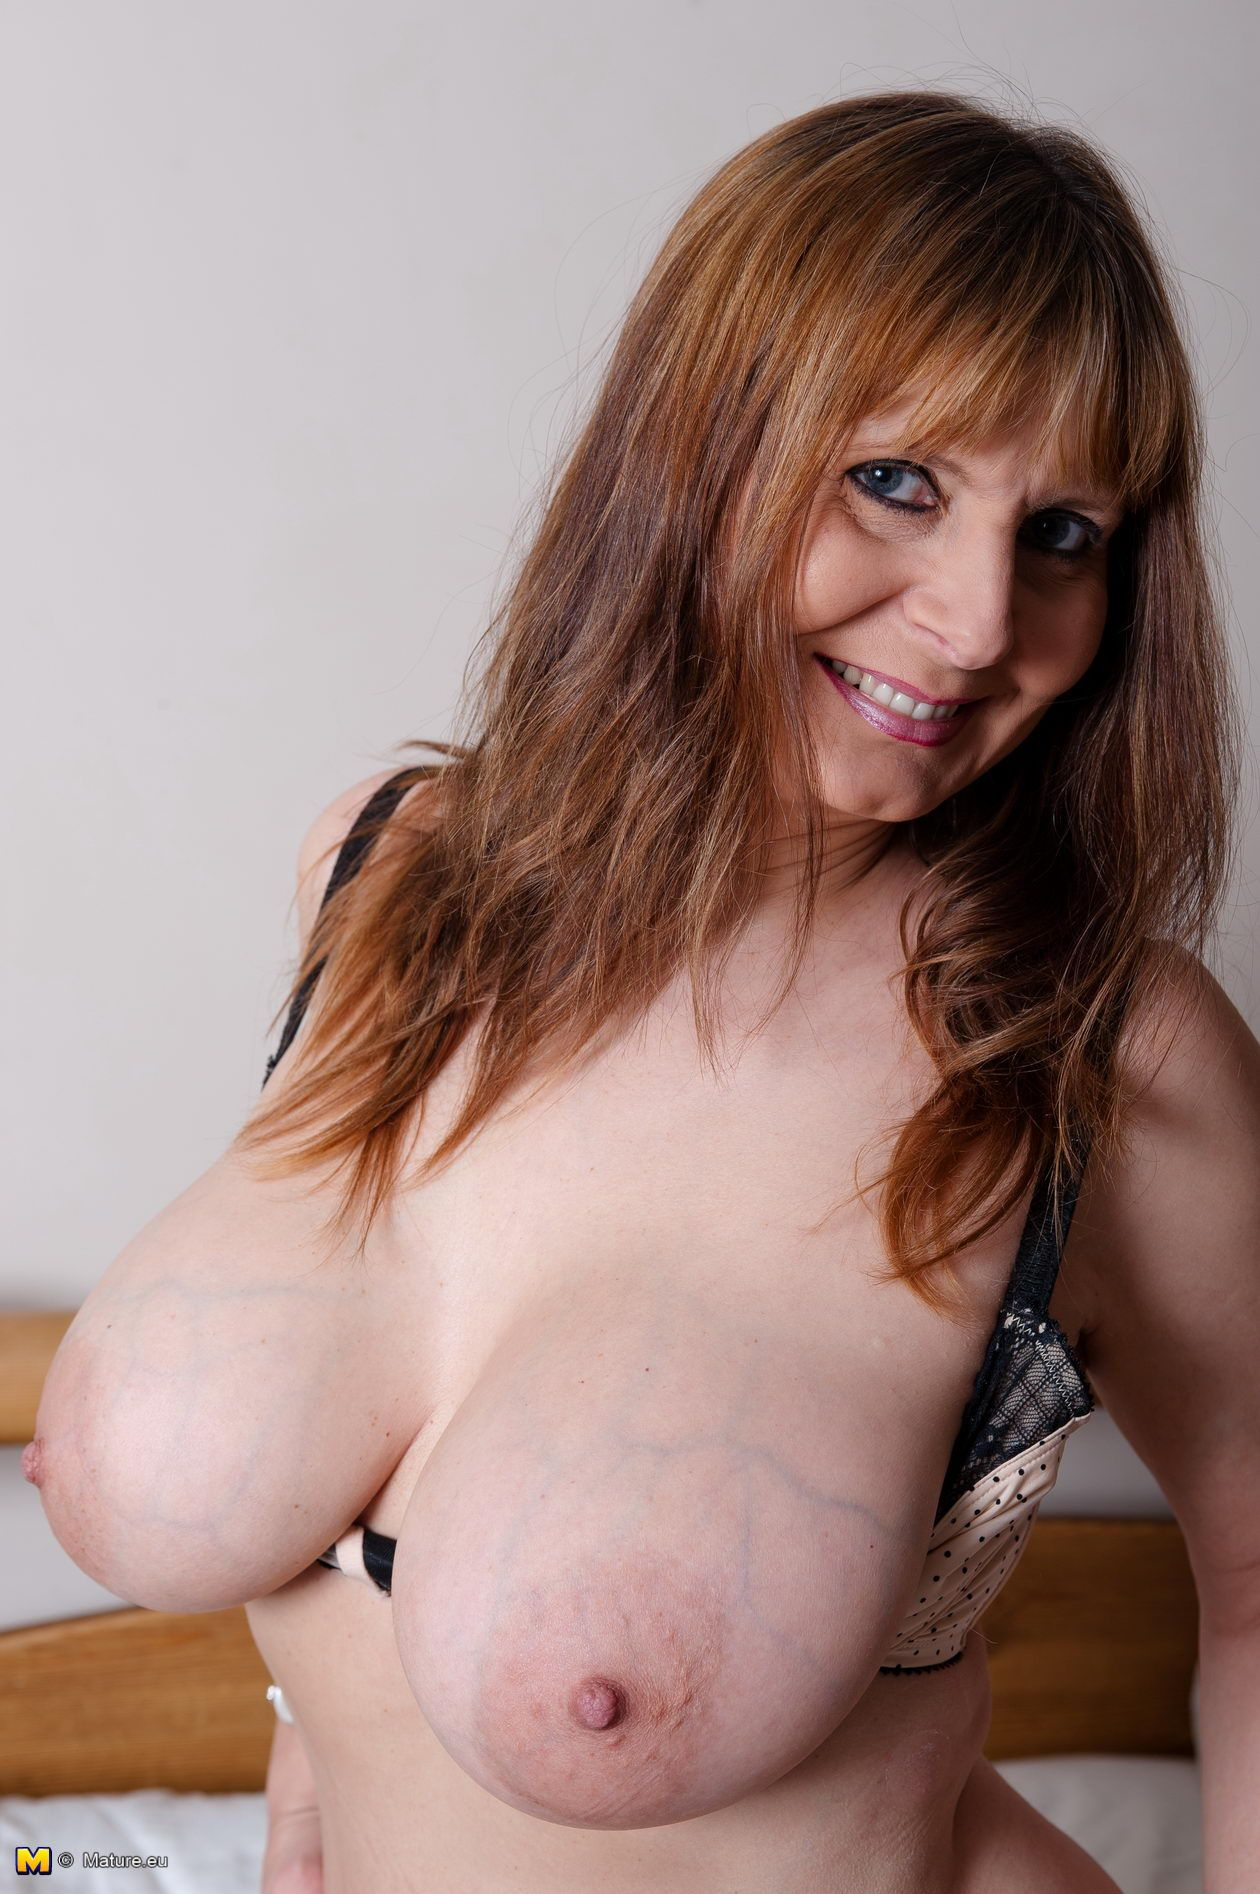 mature woman with big boobs free pron videos - aise